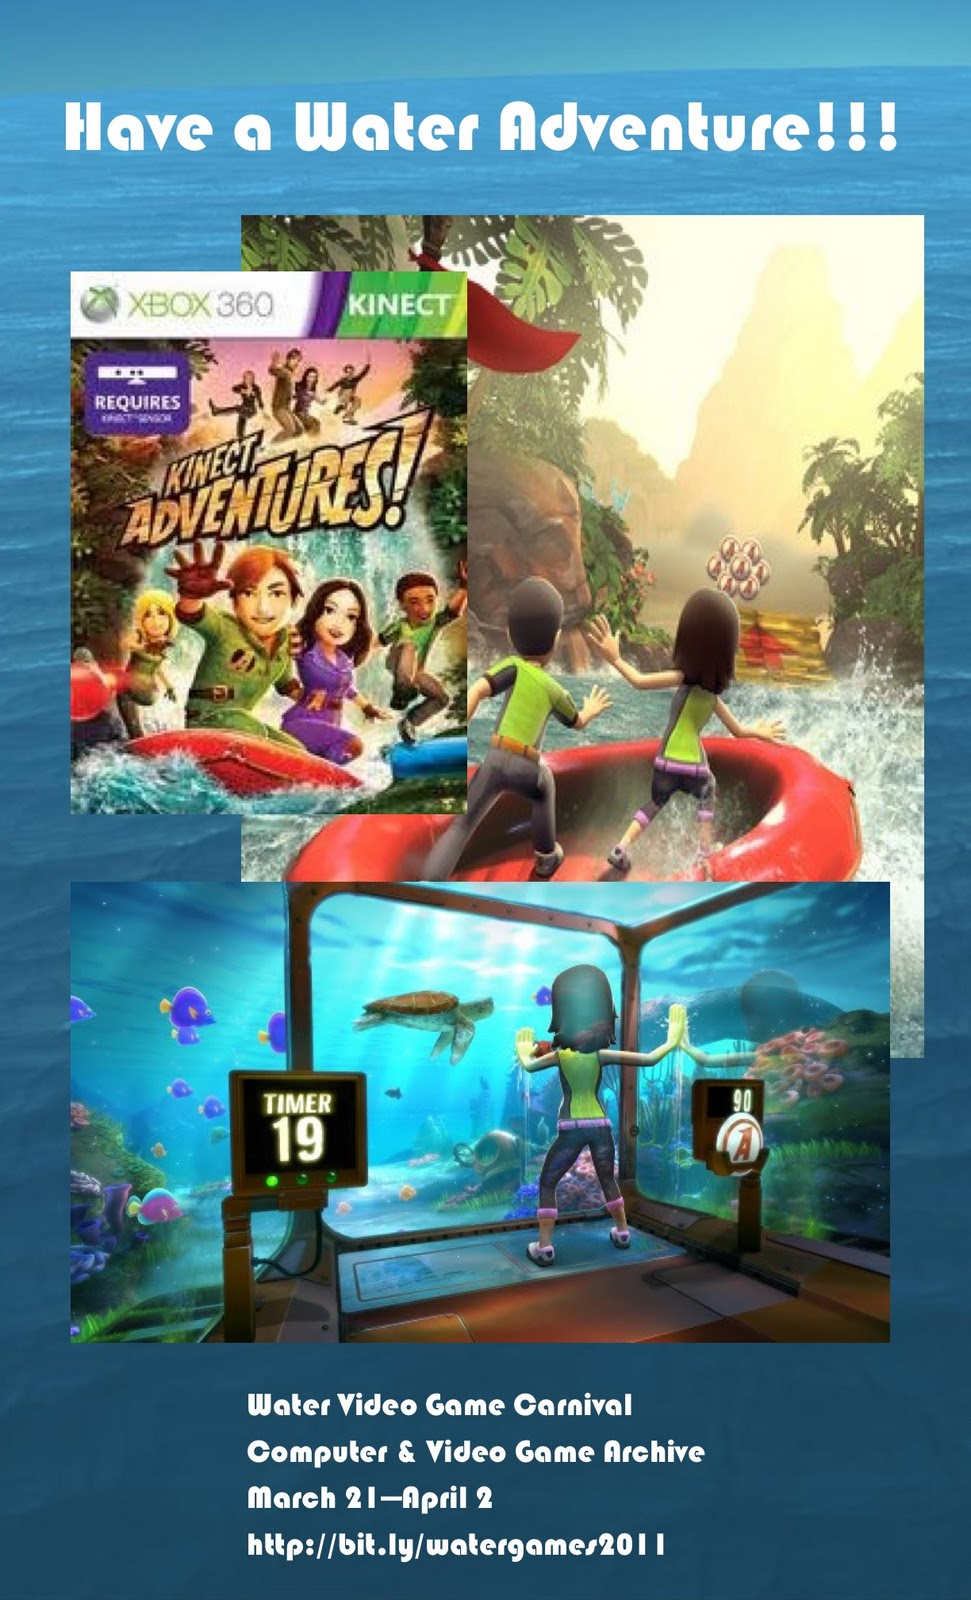 Poster/flyer for the upcoming Water Video Game Carnival.